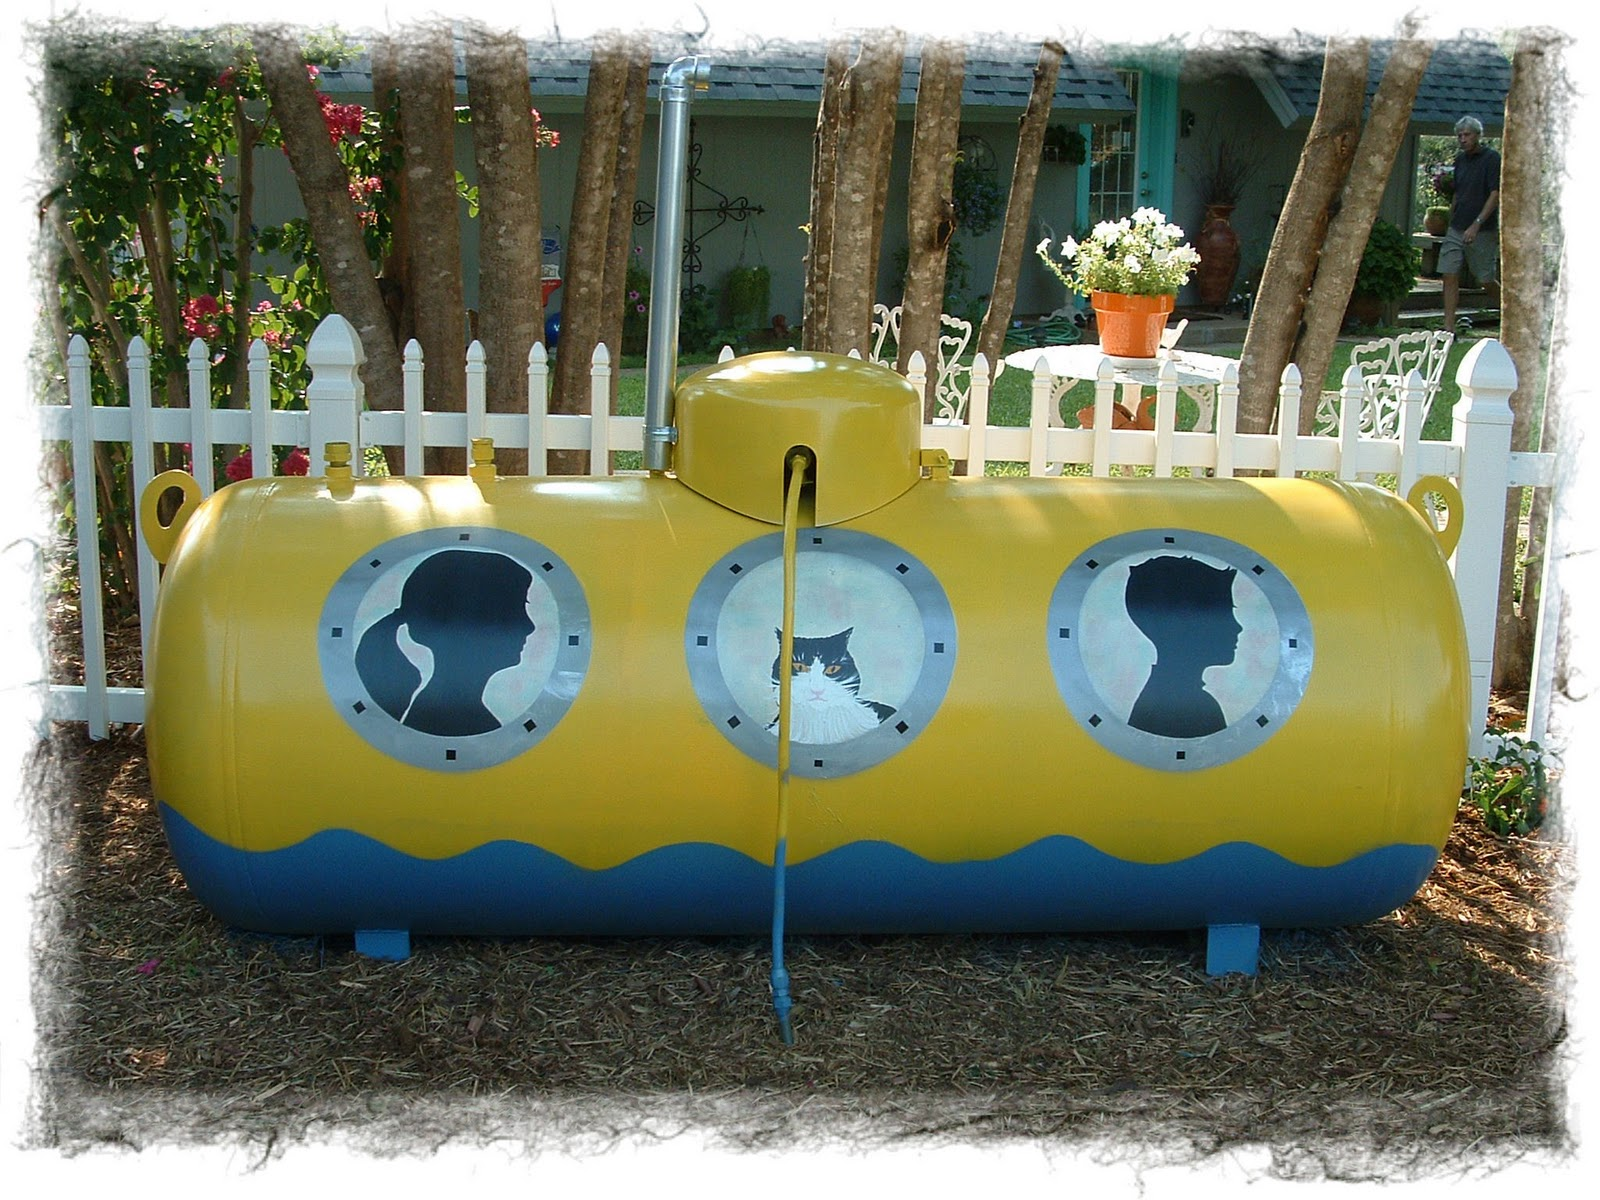 Another Painted Propane Tank